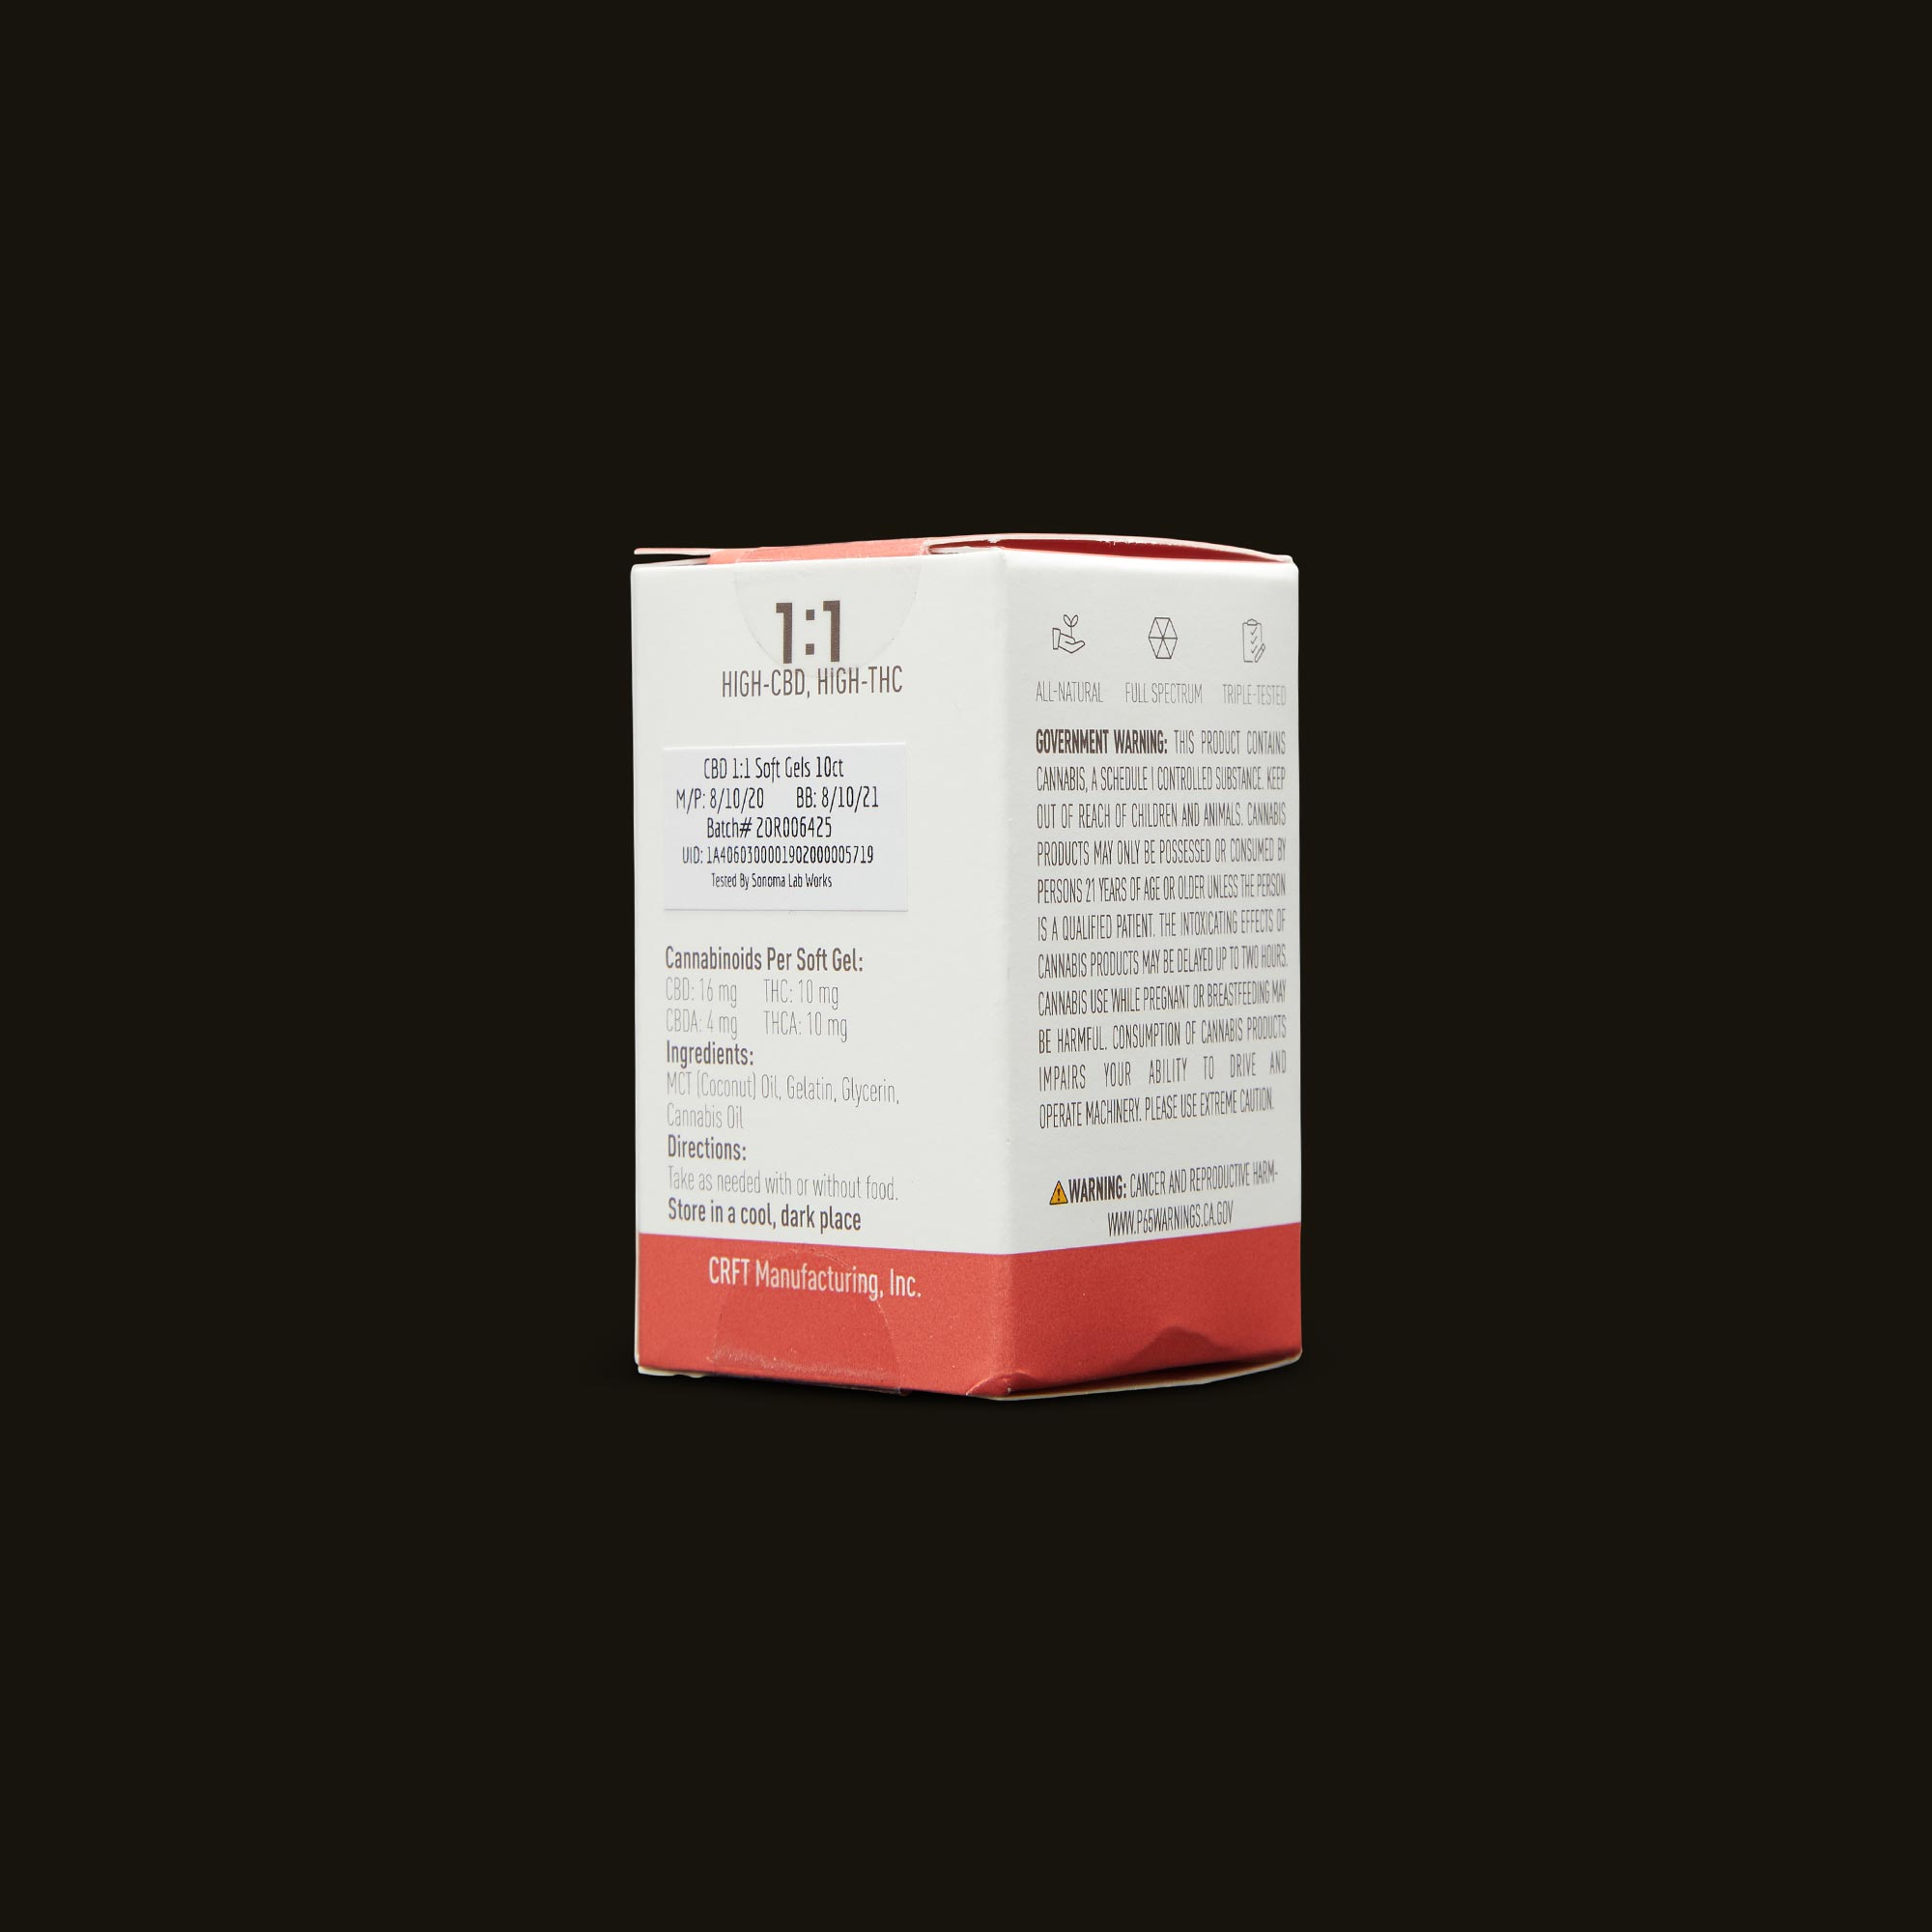 Care By Design 1:1 Soft Gels 10-Pack Ingredients